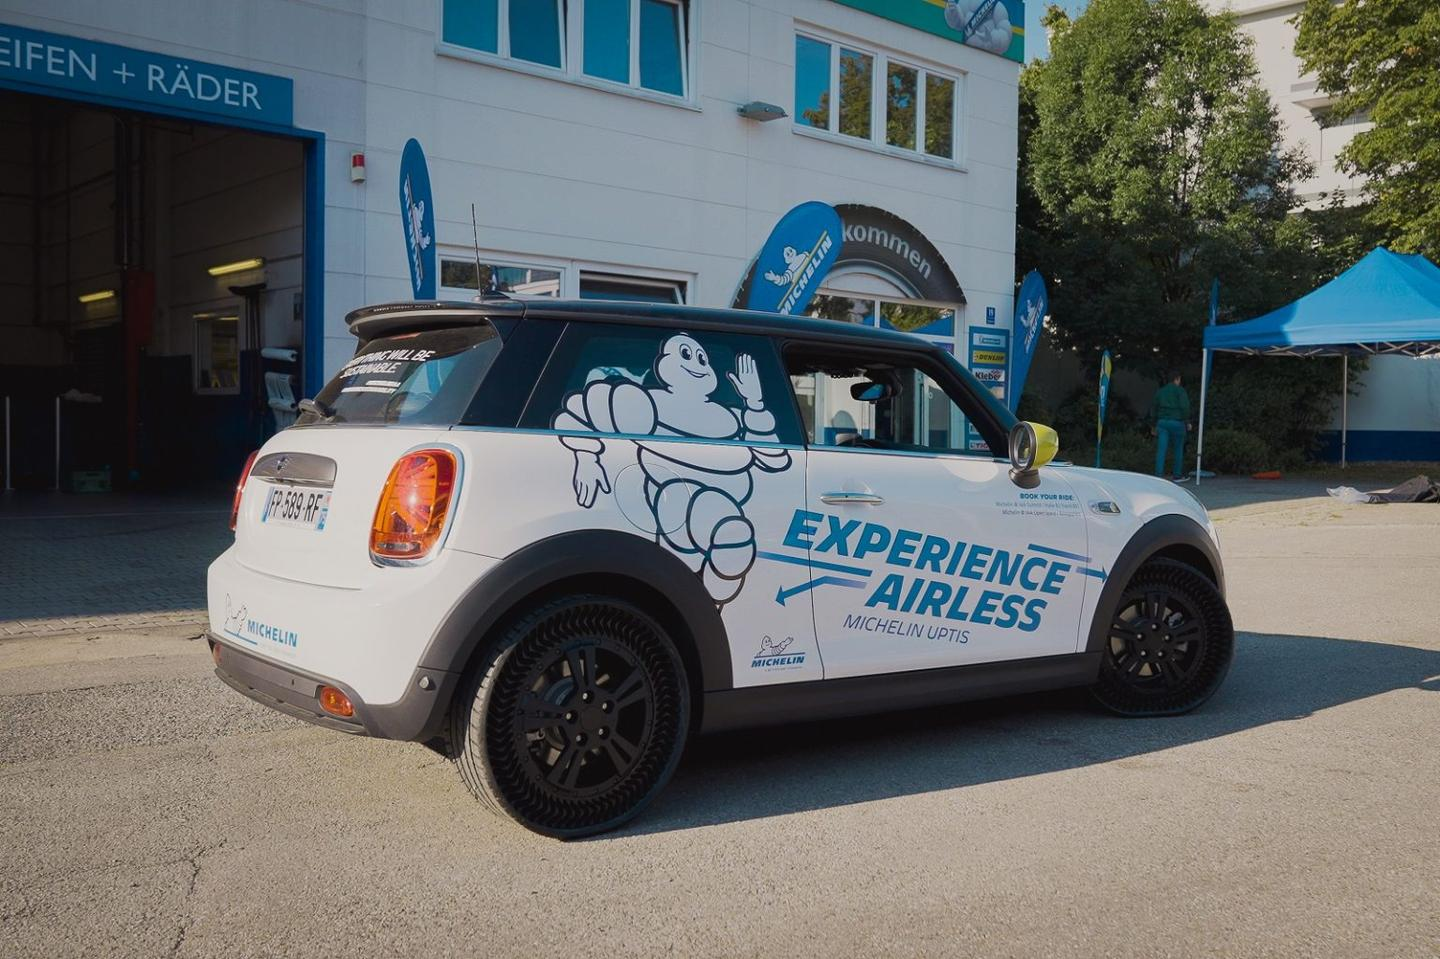 Michelin took members of the public out to experience what turned out to be a pretty standard driving experience on the Uptis tires